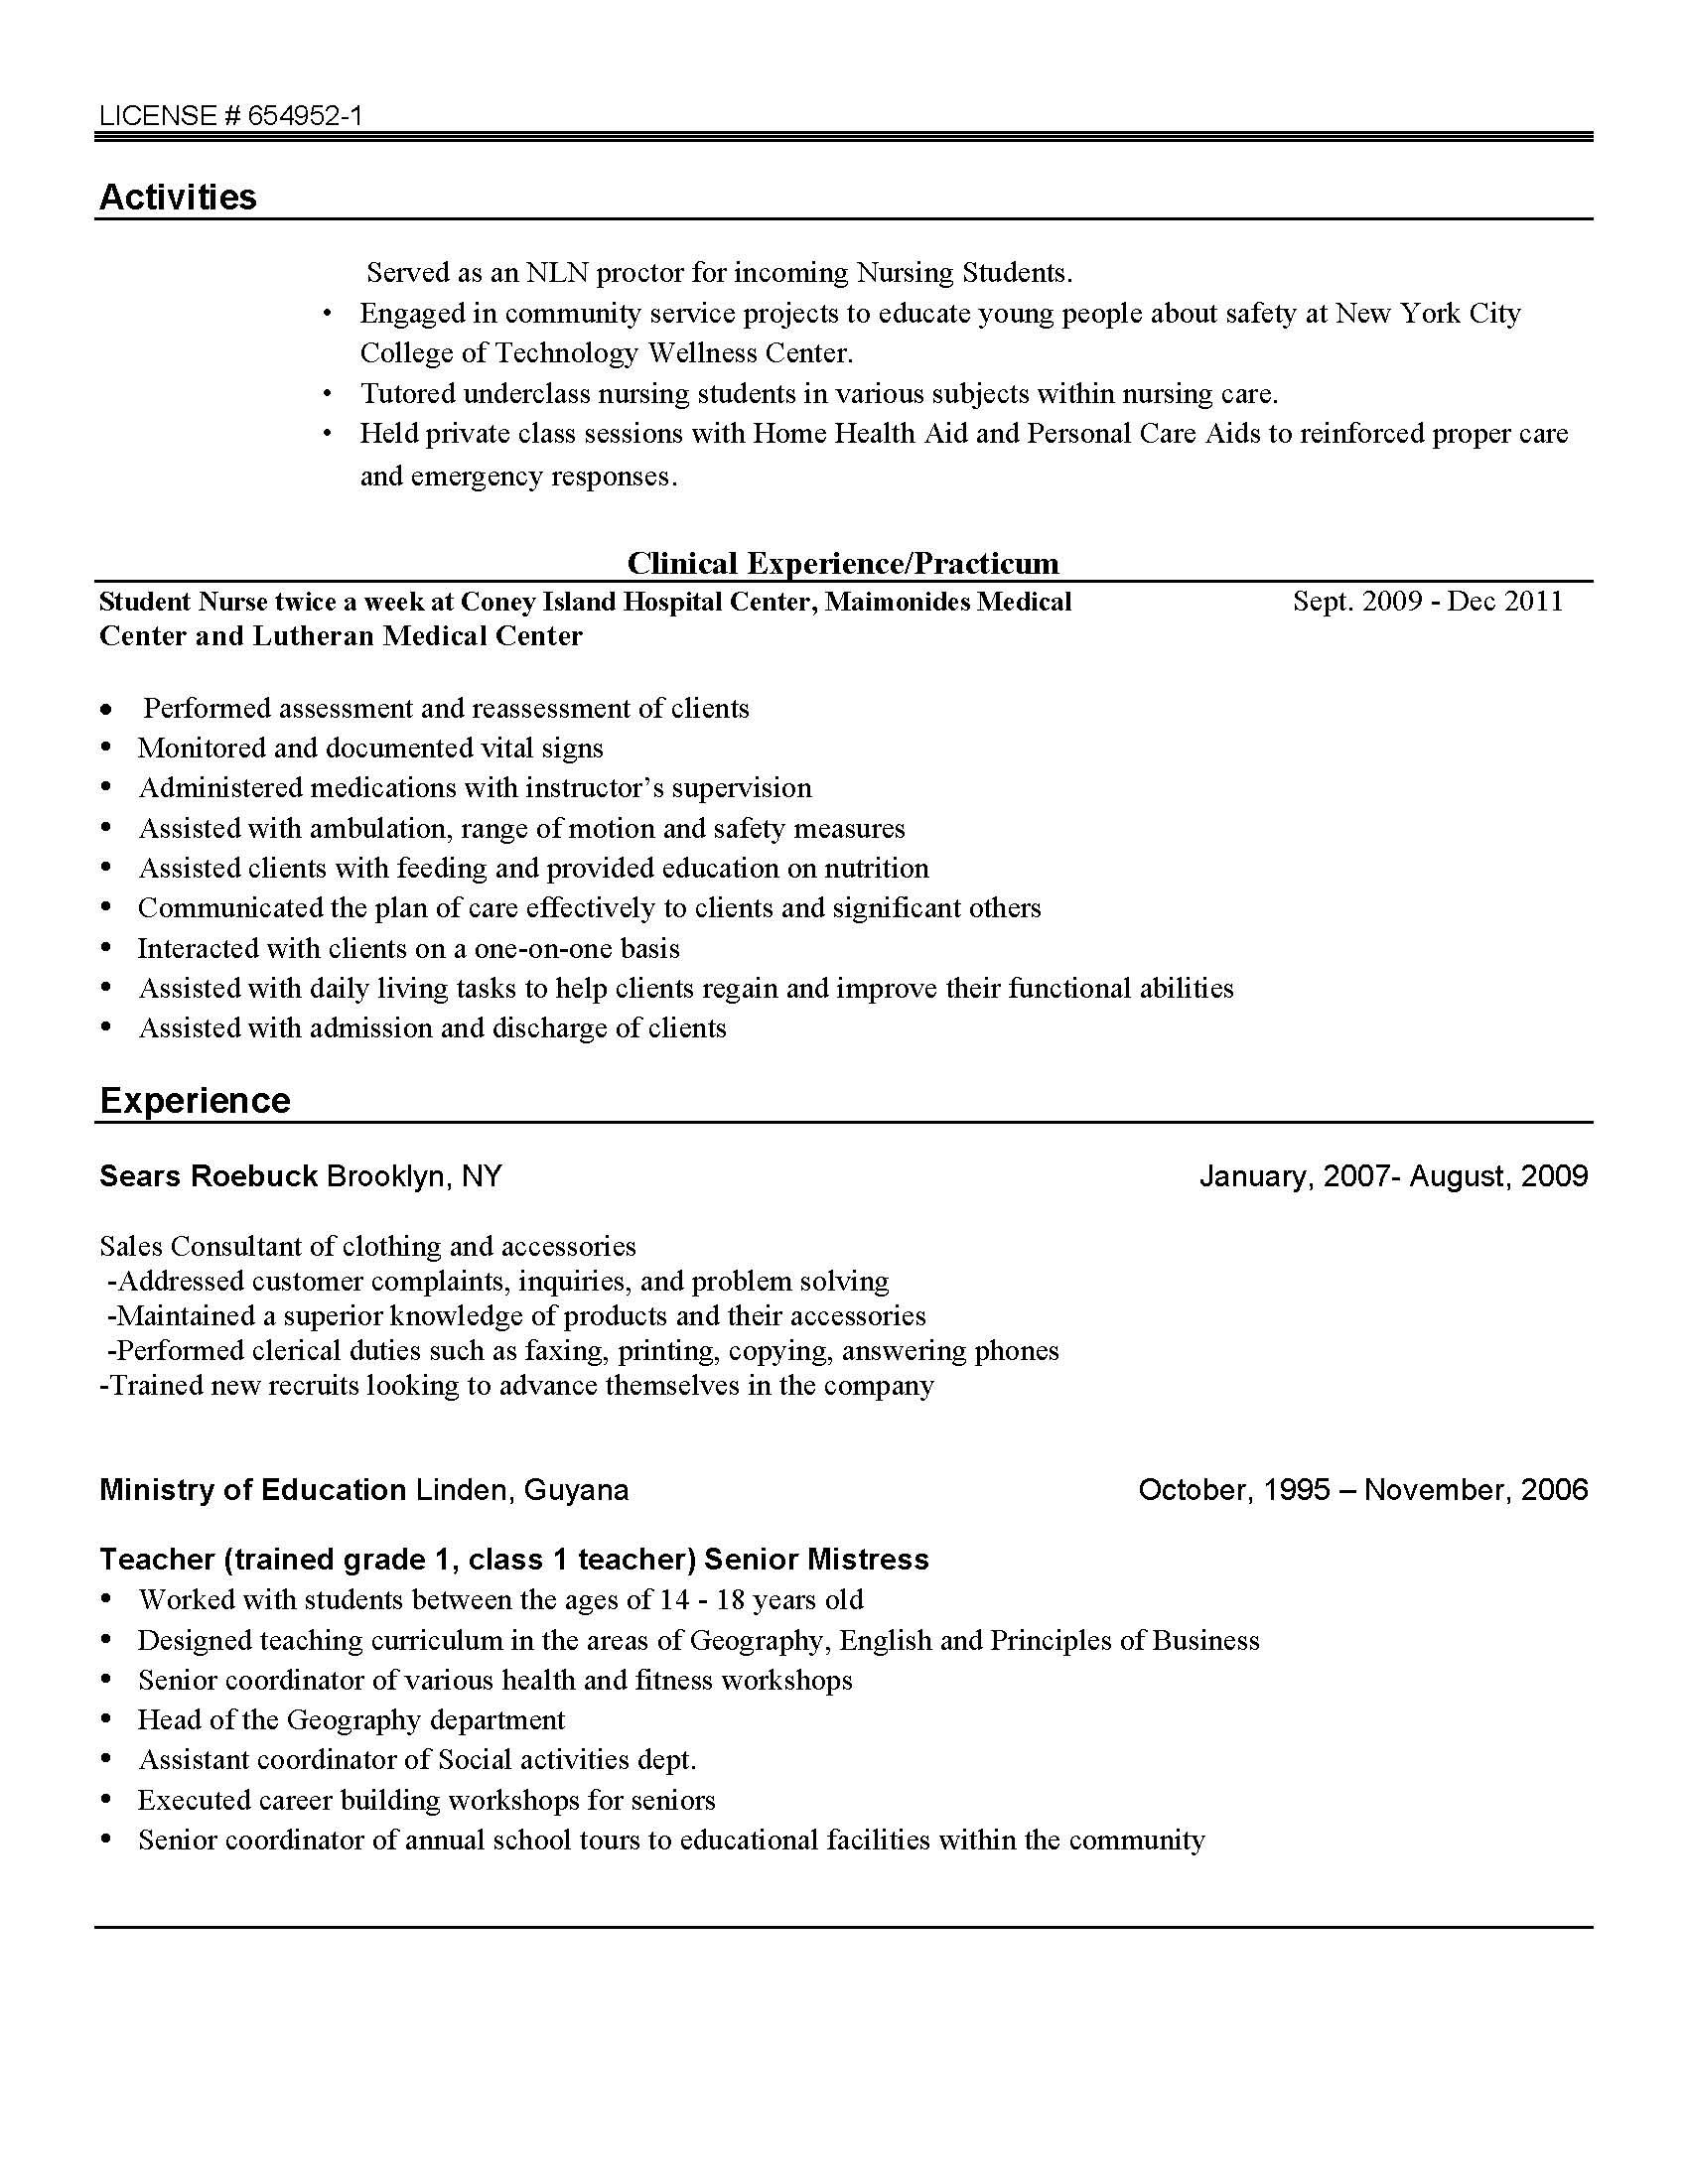 cover letter medical residency application Post residency cover letter example uc davis department of pediatrics – residency program (916) 734-2428 or pedsresidency at ucdavis edu robert edwards, md department of pediatrics xxx medical group 3456 stockton blvd sacramento, california 95817 date dear dr edwards i will be.